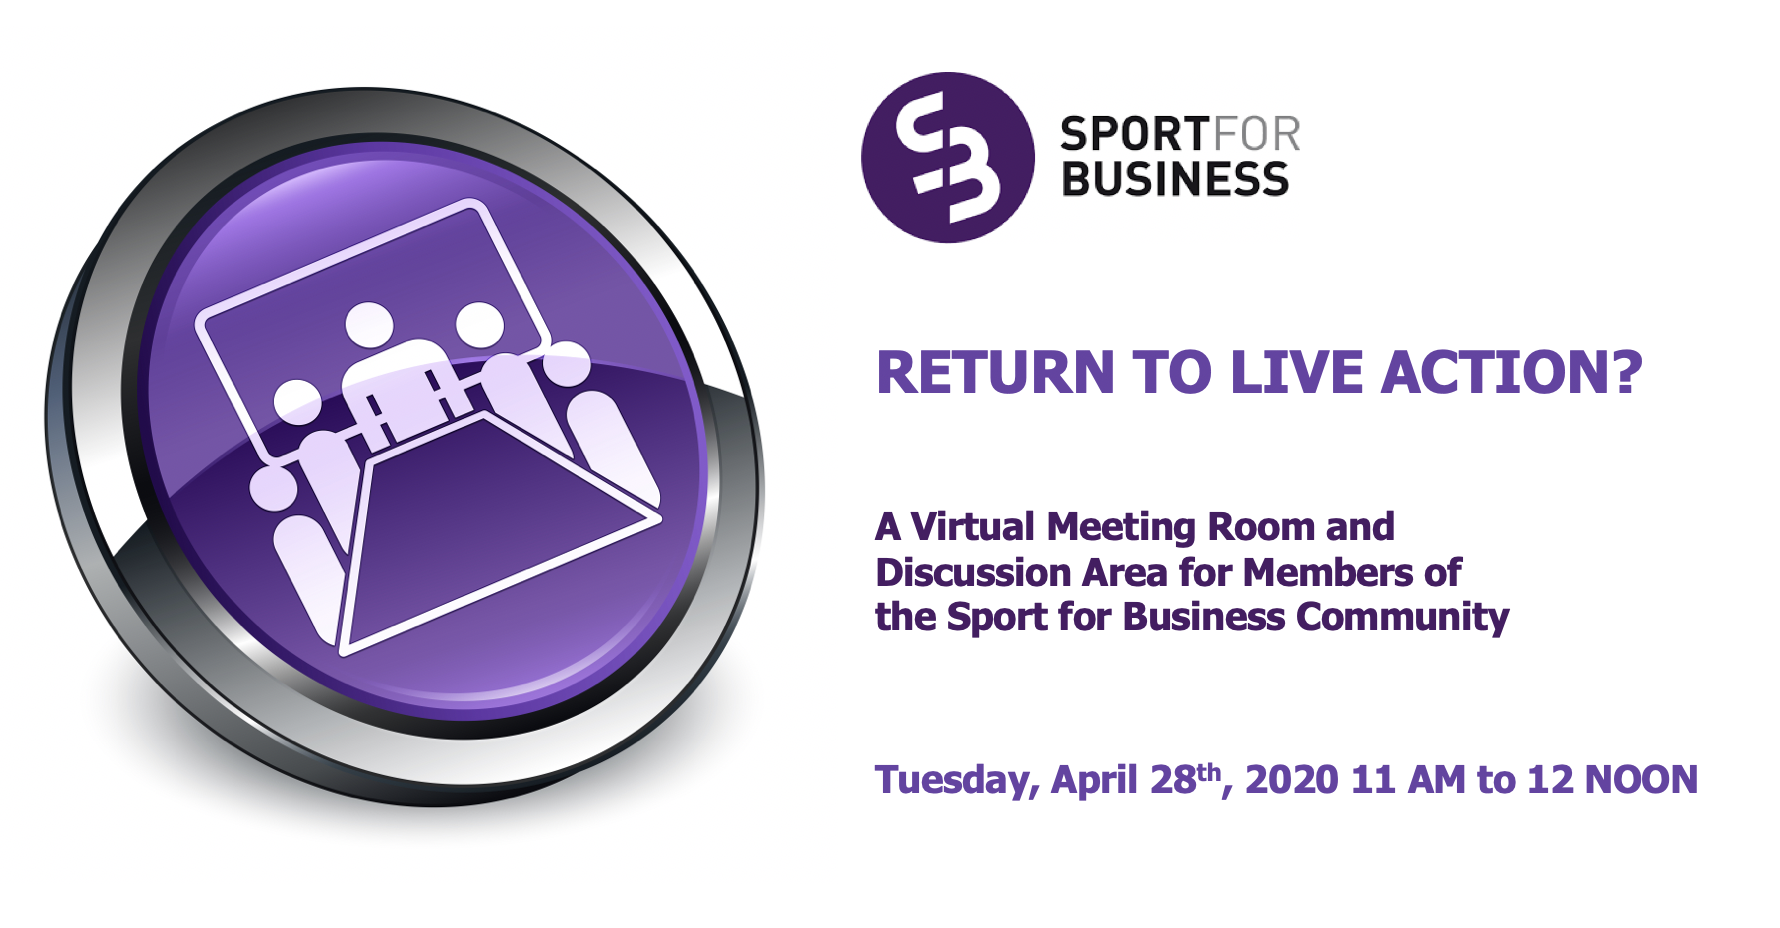 Sport for Business Live Meeting - Returning 'Behind Closed Doors'